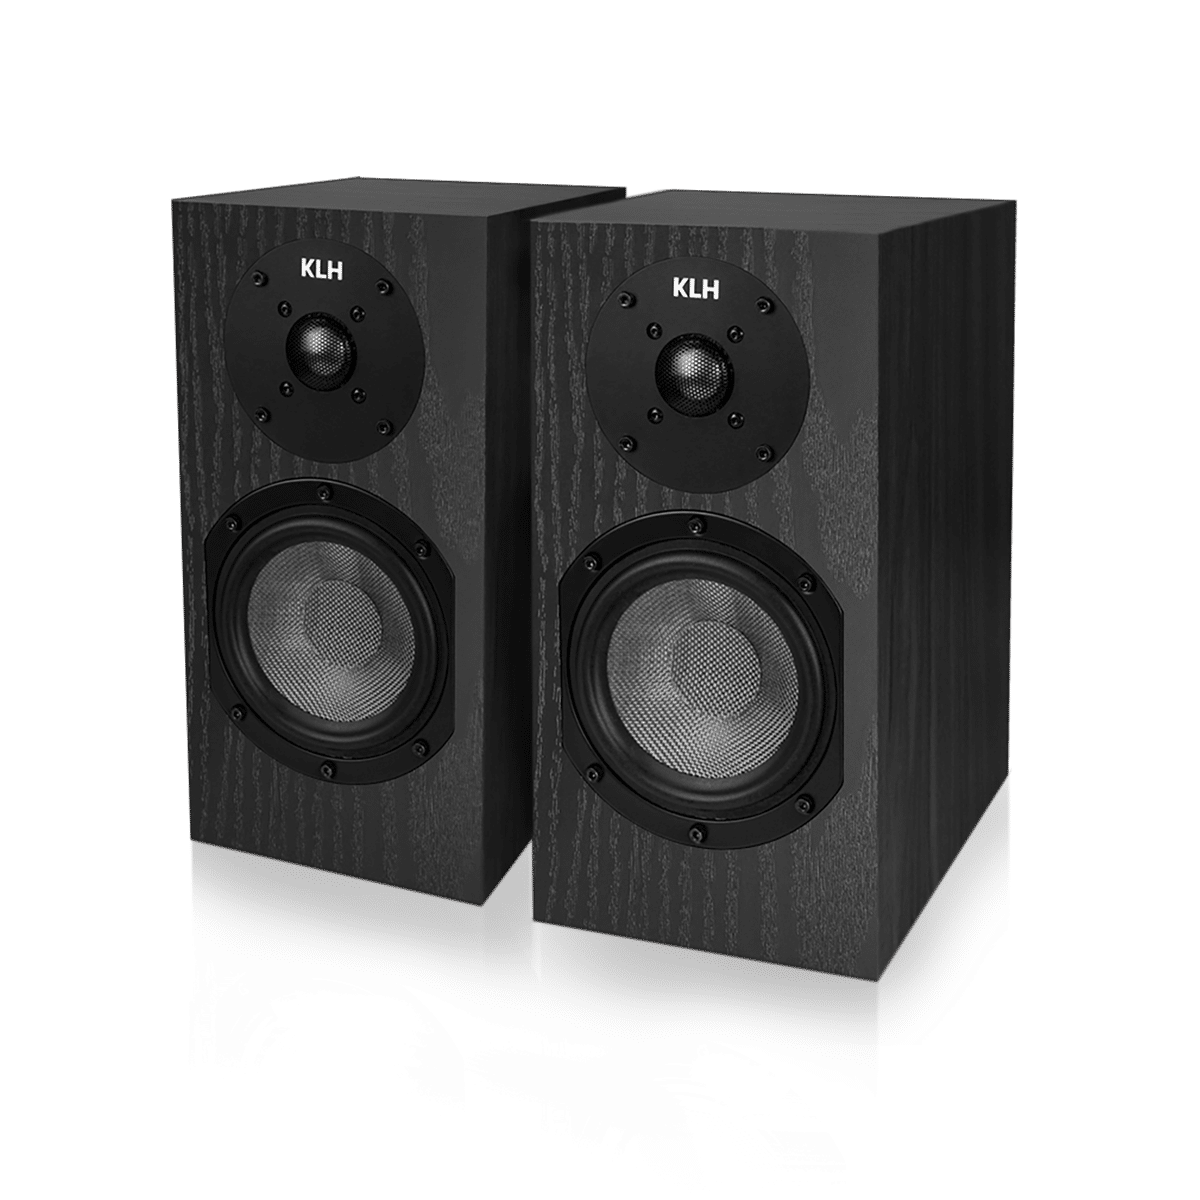 KLH Premium High-fidelity Bookshelf Speakers